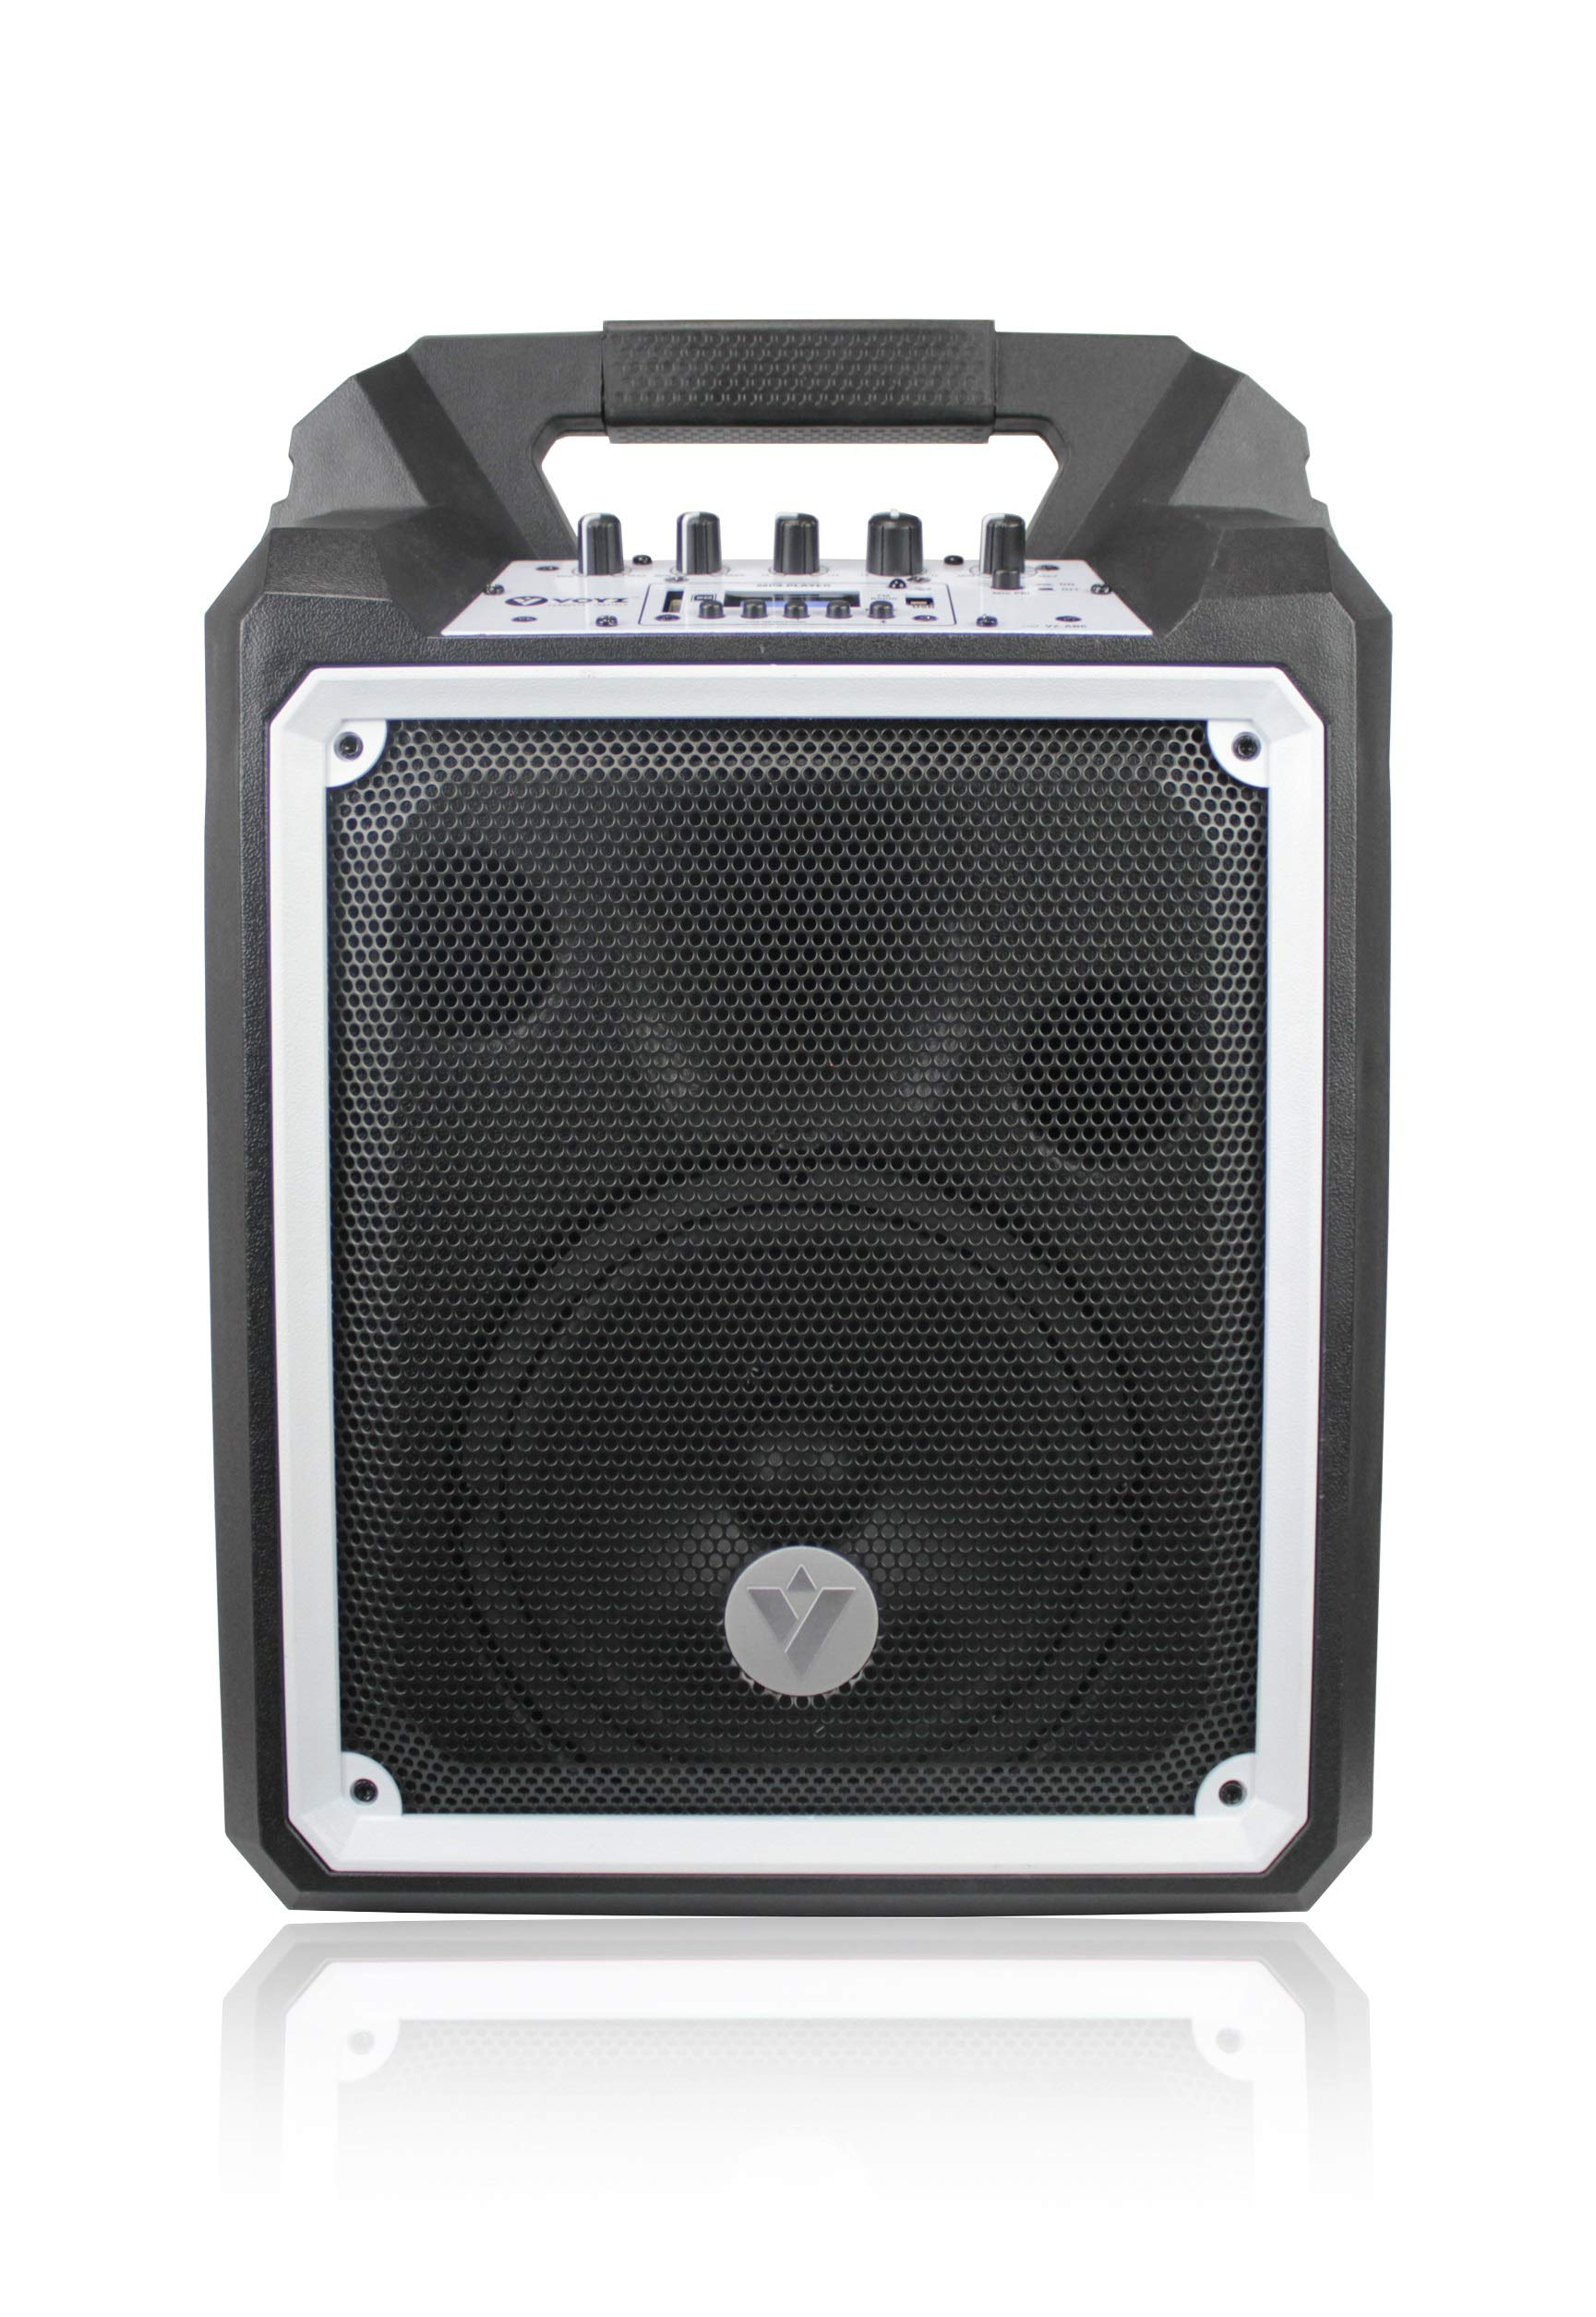 VOYZ 100W Bluetooth Boombox Speaker - Portable, Wireless, Waterproof - Rugged Construction Loudspeaker with Built in Sub-Woofer - Rechargeable Battery FM Radio equipped USB MP3 SD Card Reader (VZ-AB6)